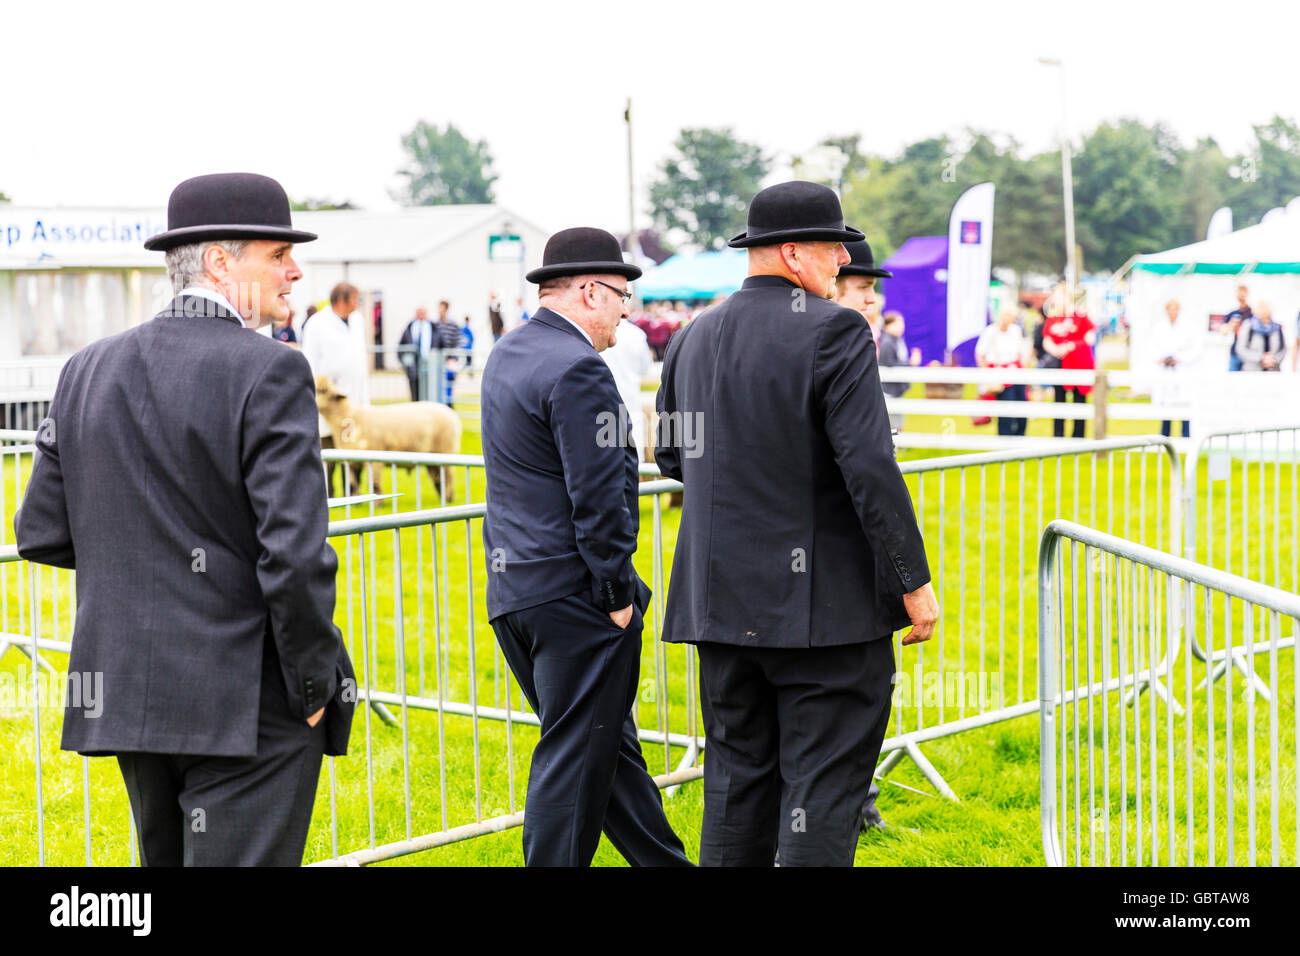 Men in bowler hats wearing bowler hat suits suit posh attire smart smartly dressed UK England GB - Stock Image